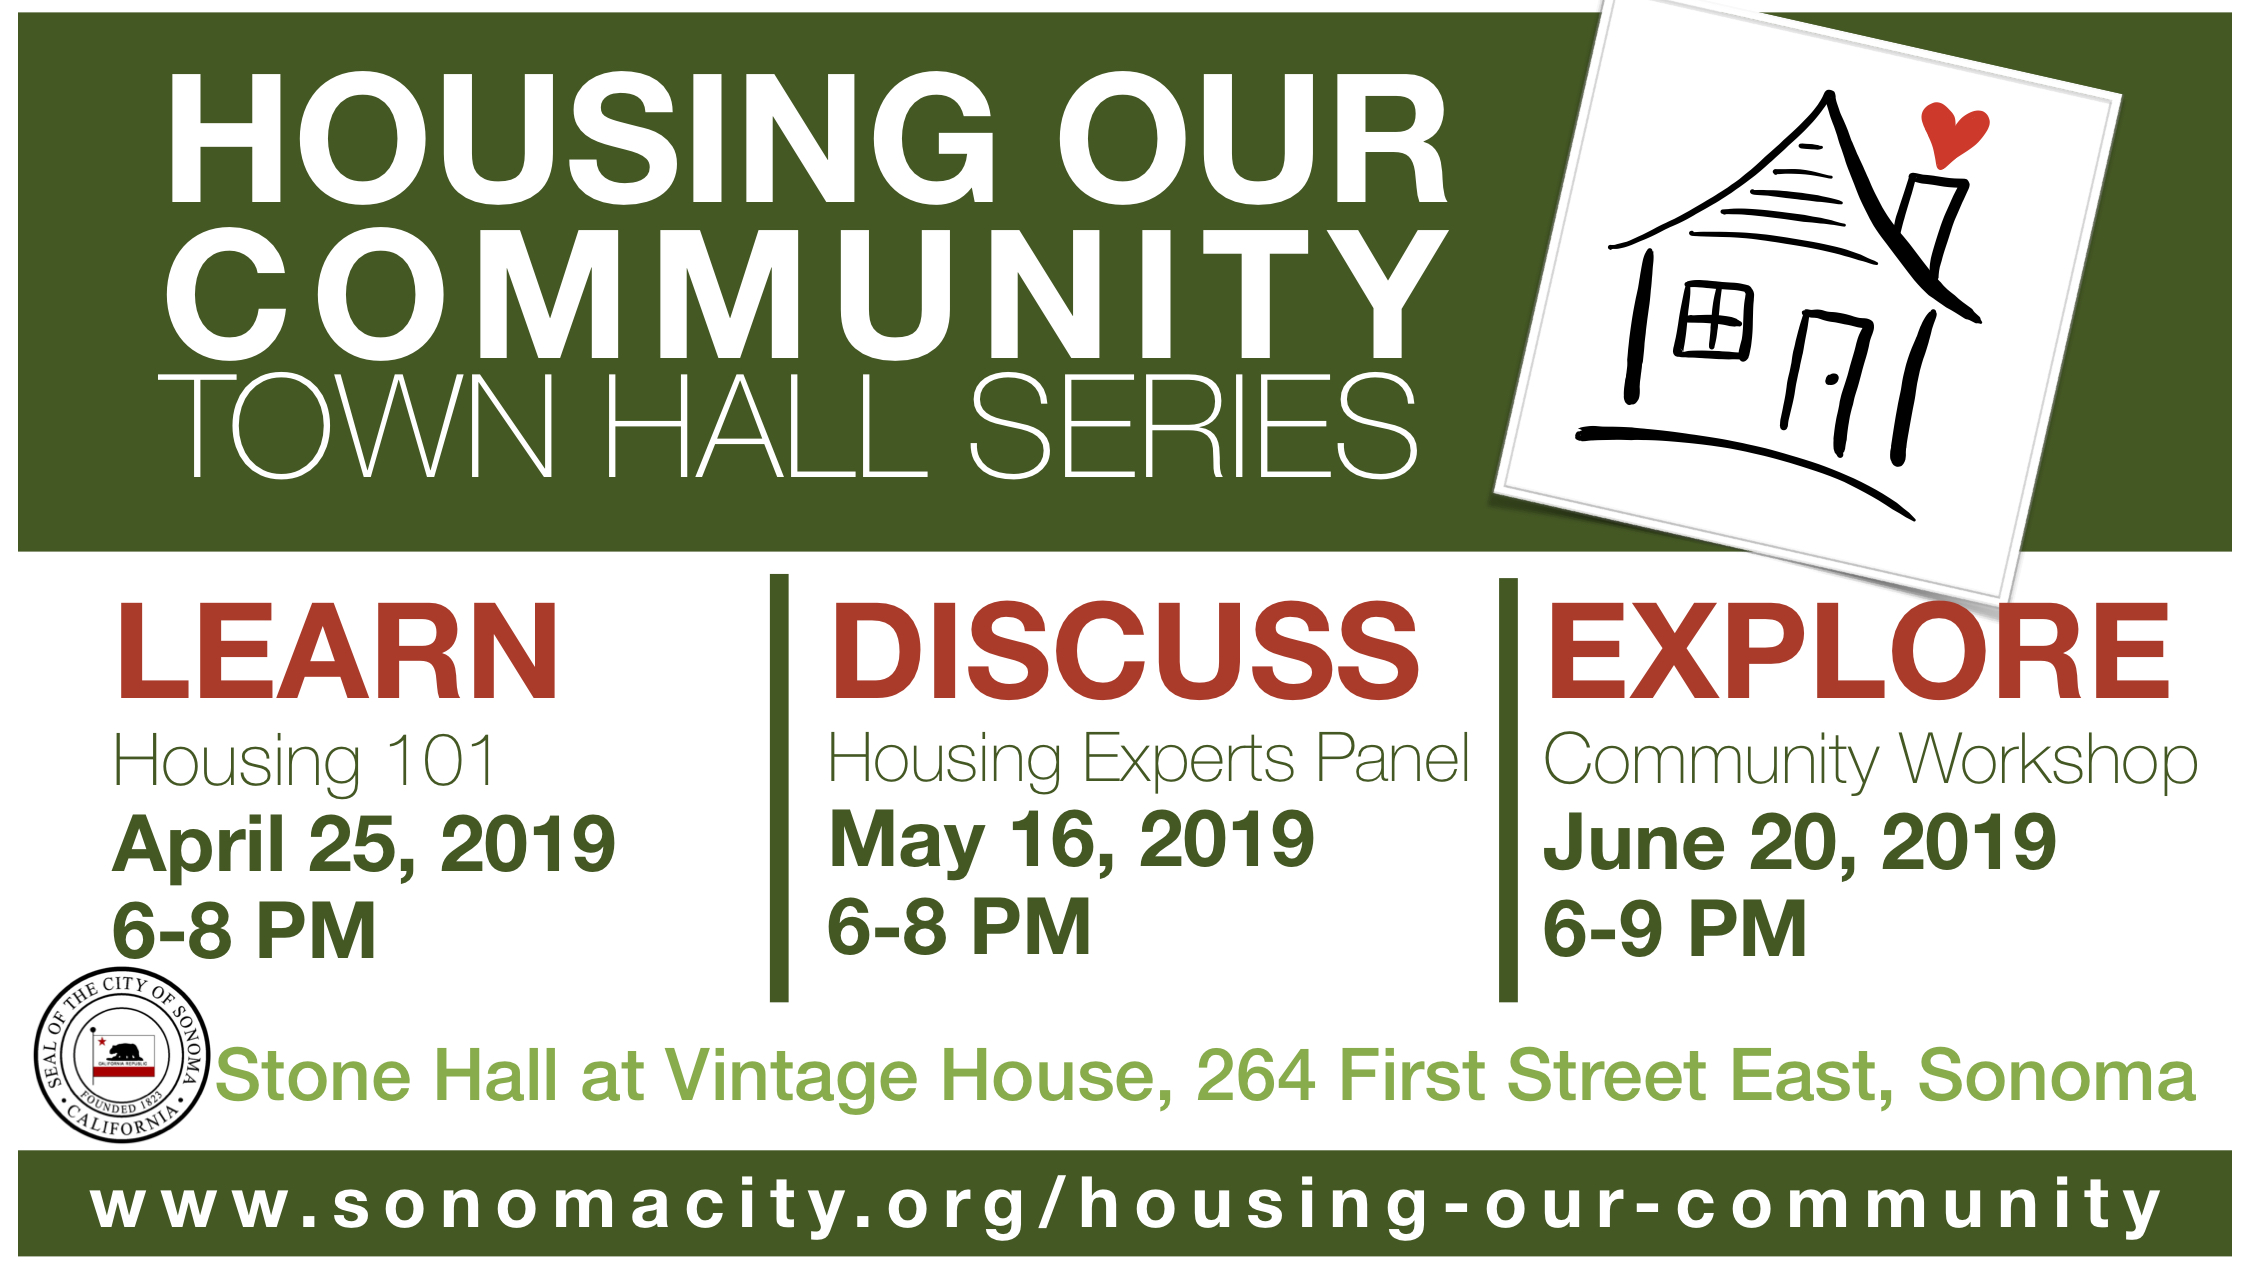 Housing Our Community Town Hall Series